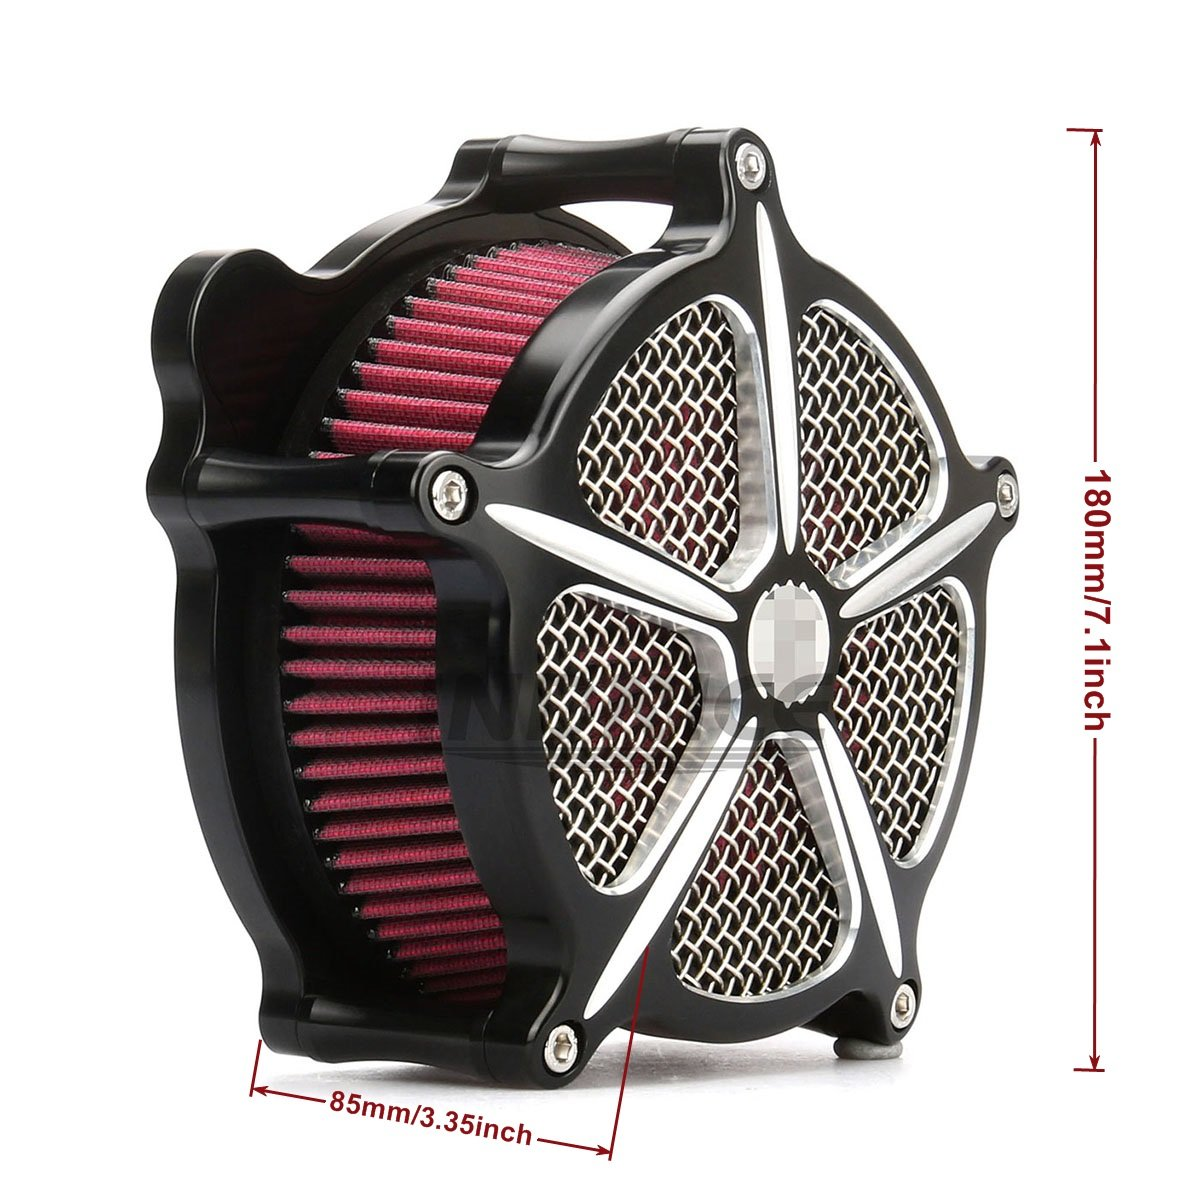 CNC Edge Cut Air Cleaner street glide air Intake Filter road glide air filter For Harley Touring Models 2008-2016